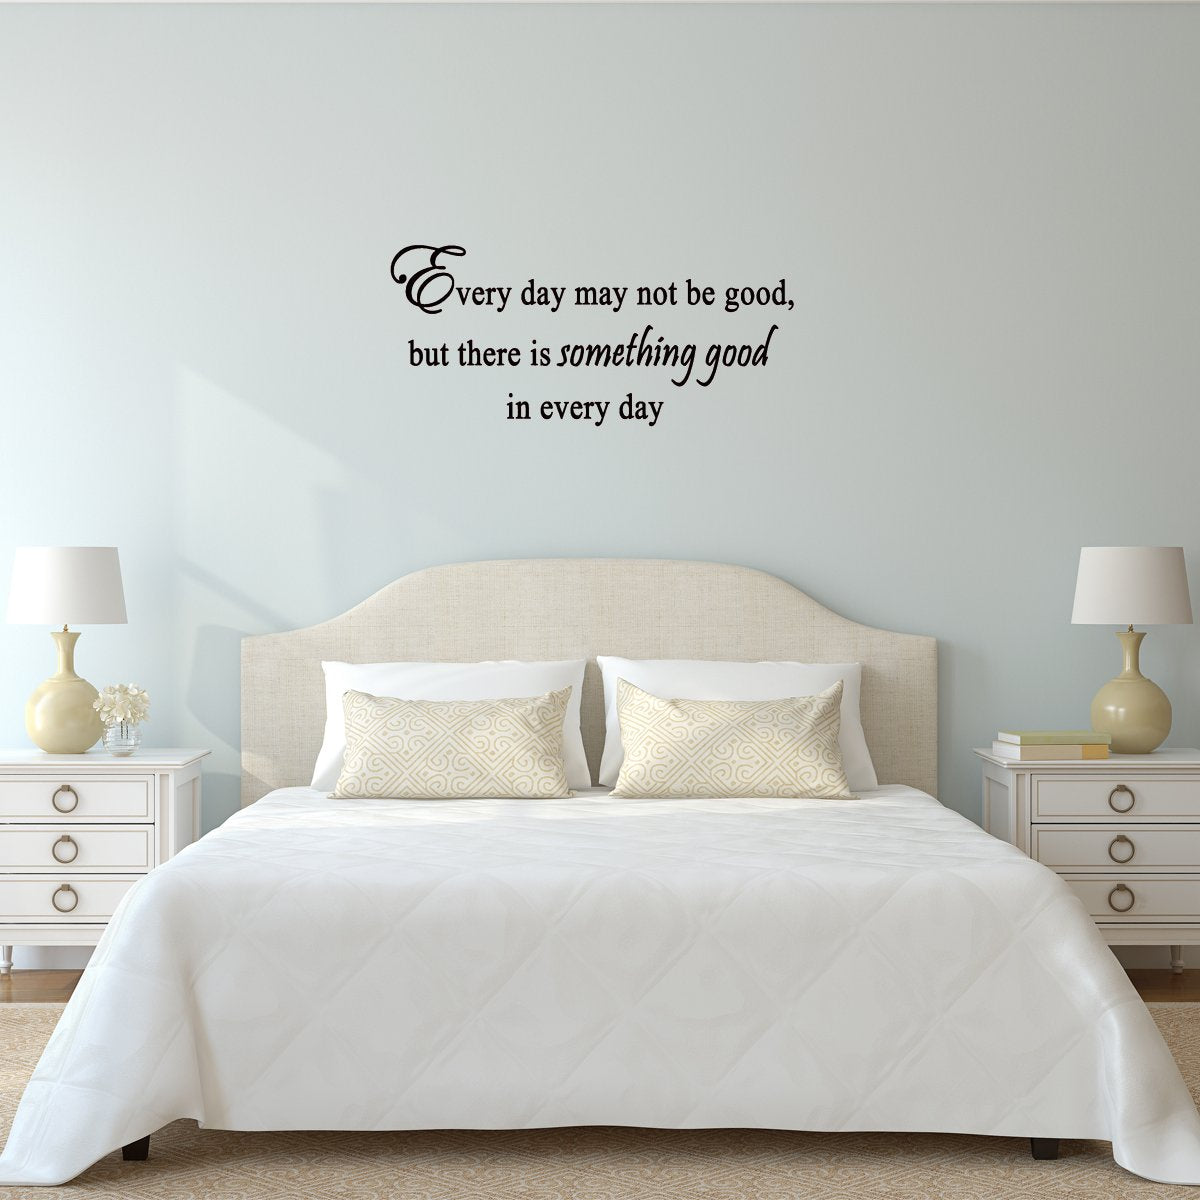 VWAQ Every Day May Not Be Good Vinyl Wall Art Quotes Decal - VWAQ Vinyl Wall Art Quotes and Prints